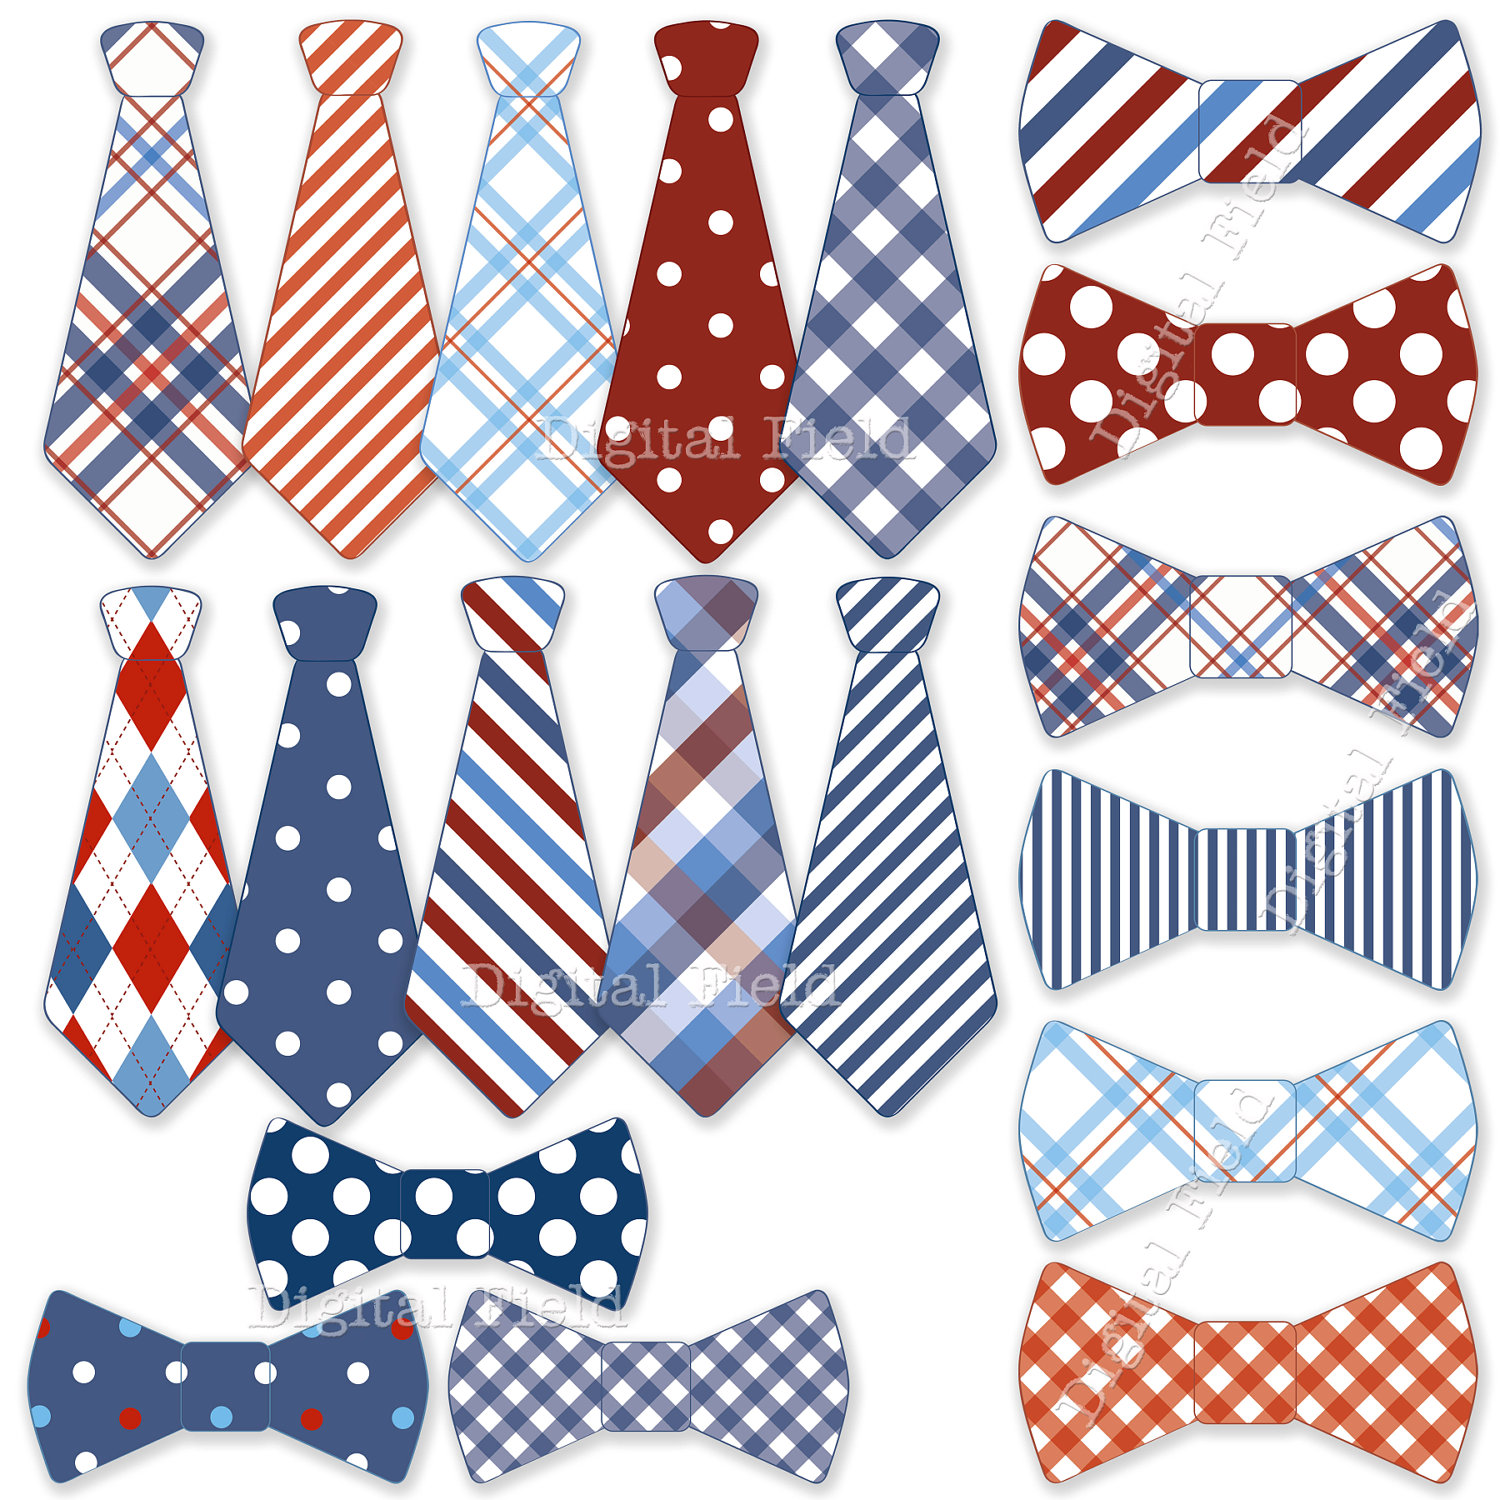 Neck ties clipart #12